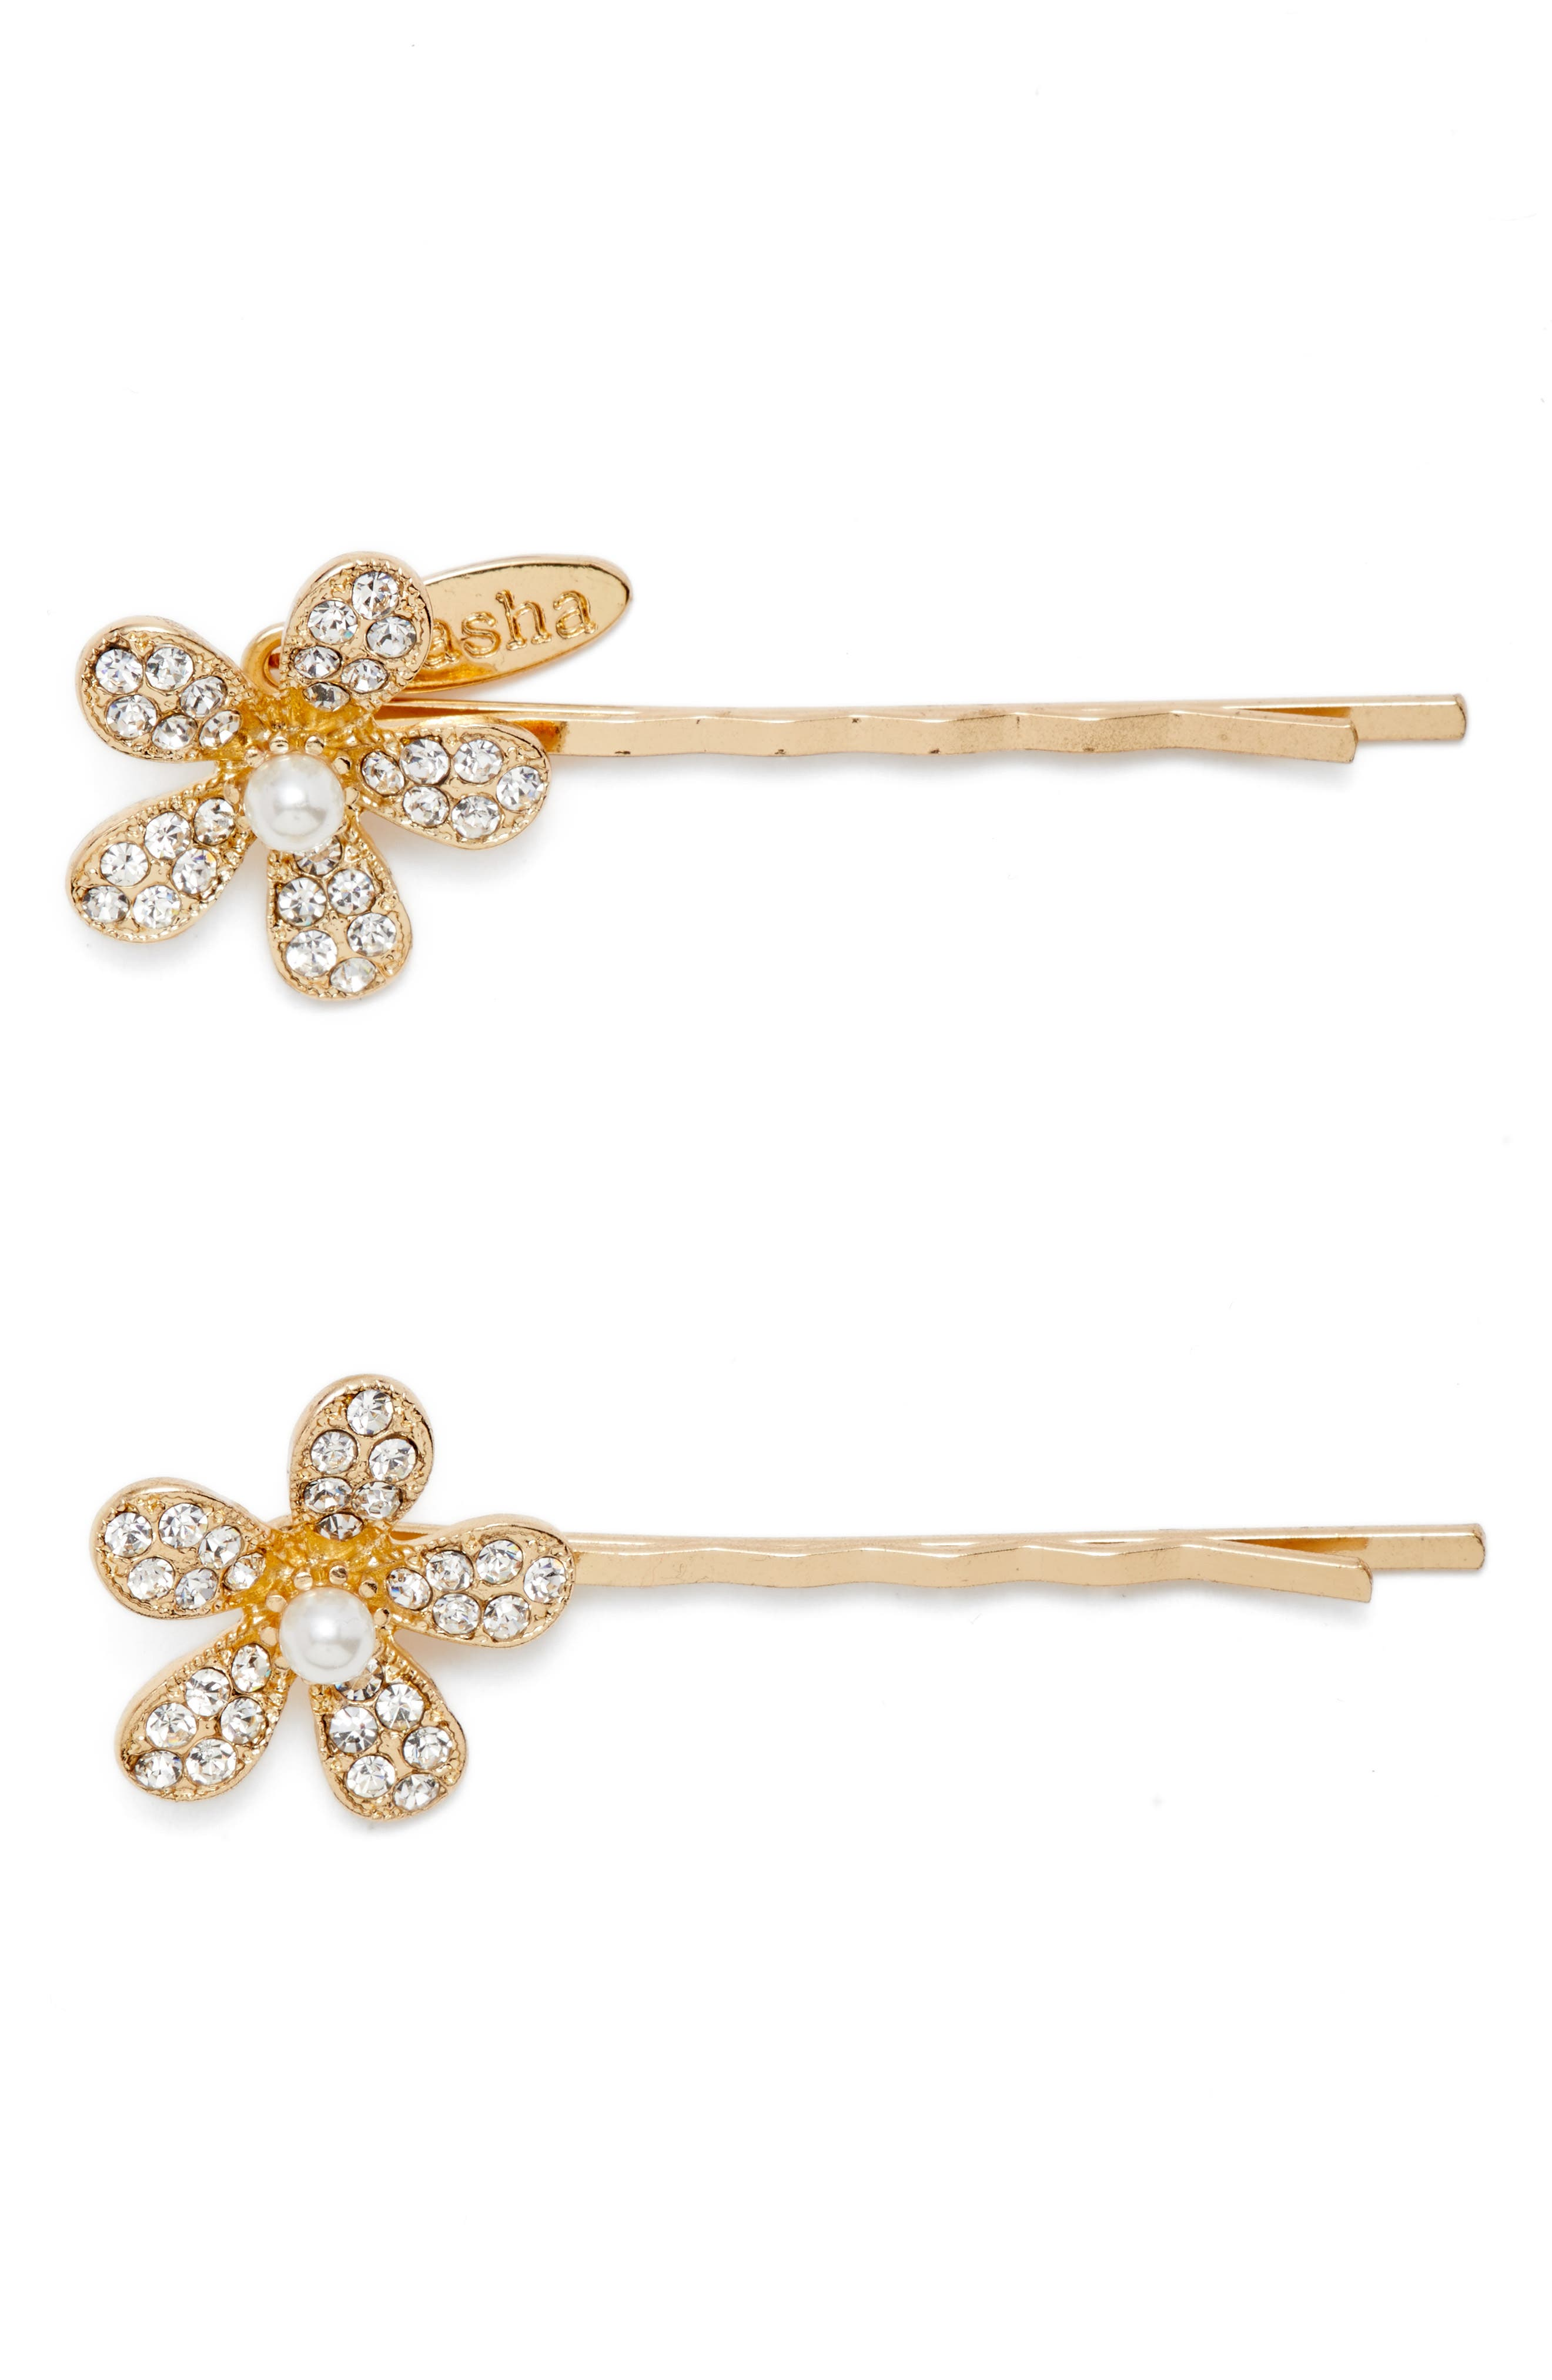 Alternate Image 1 Selected - Tasha Princess Floral Set of 2 Bobby Pins